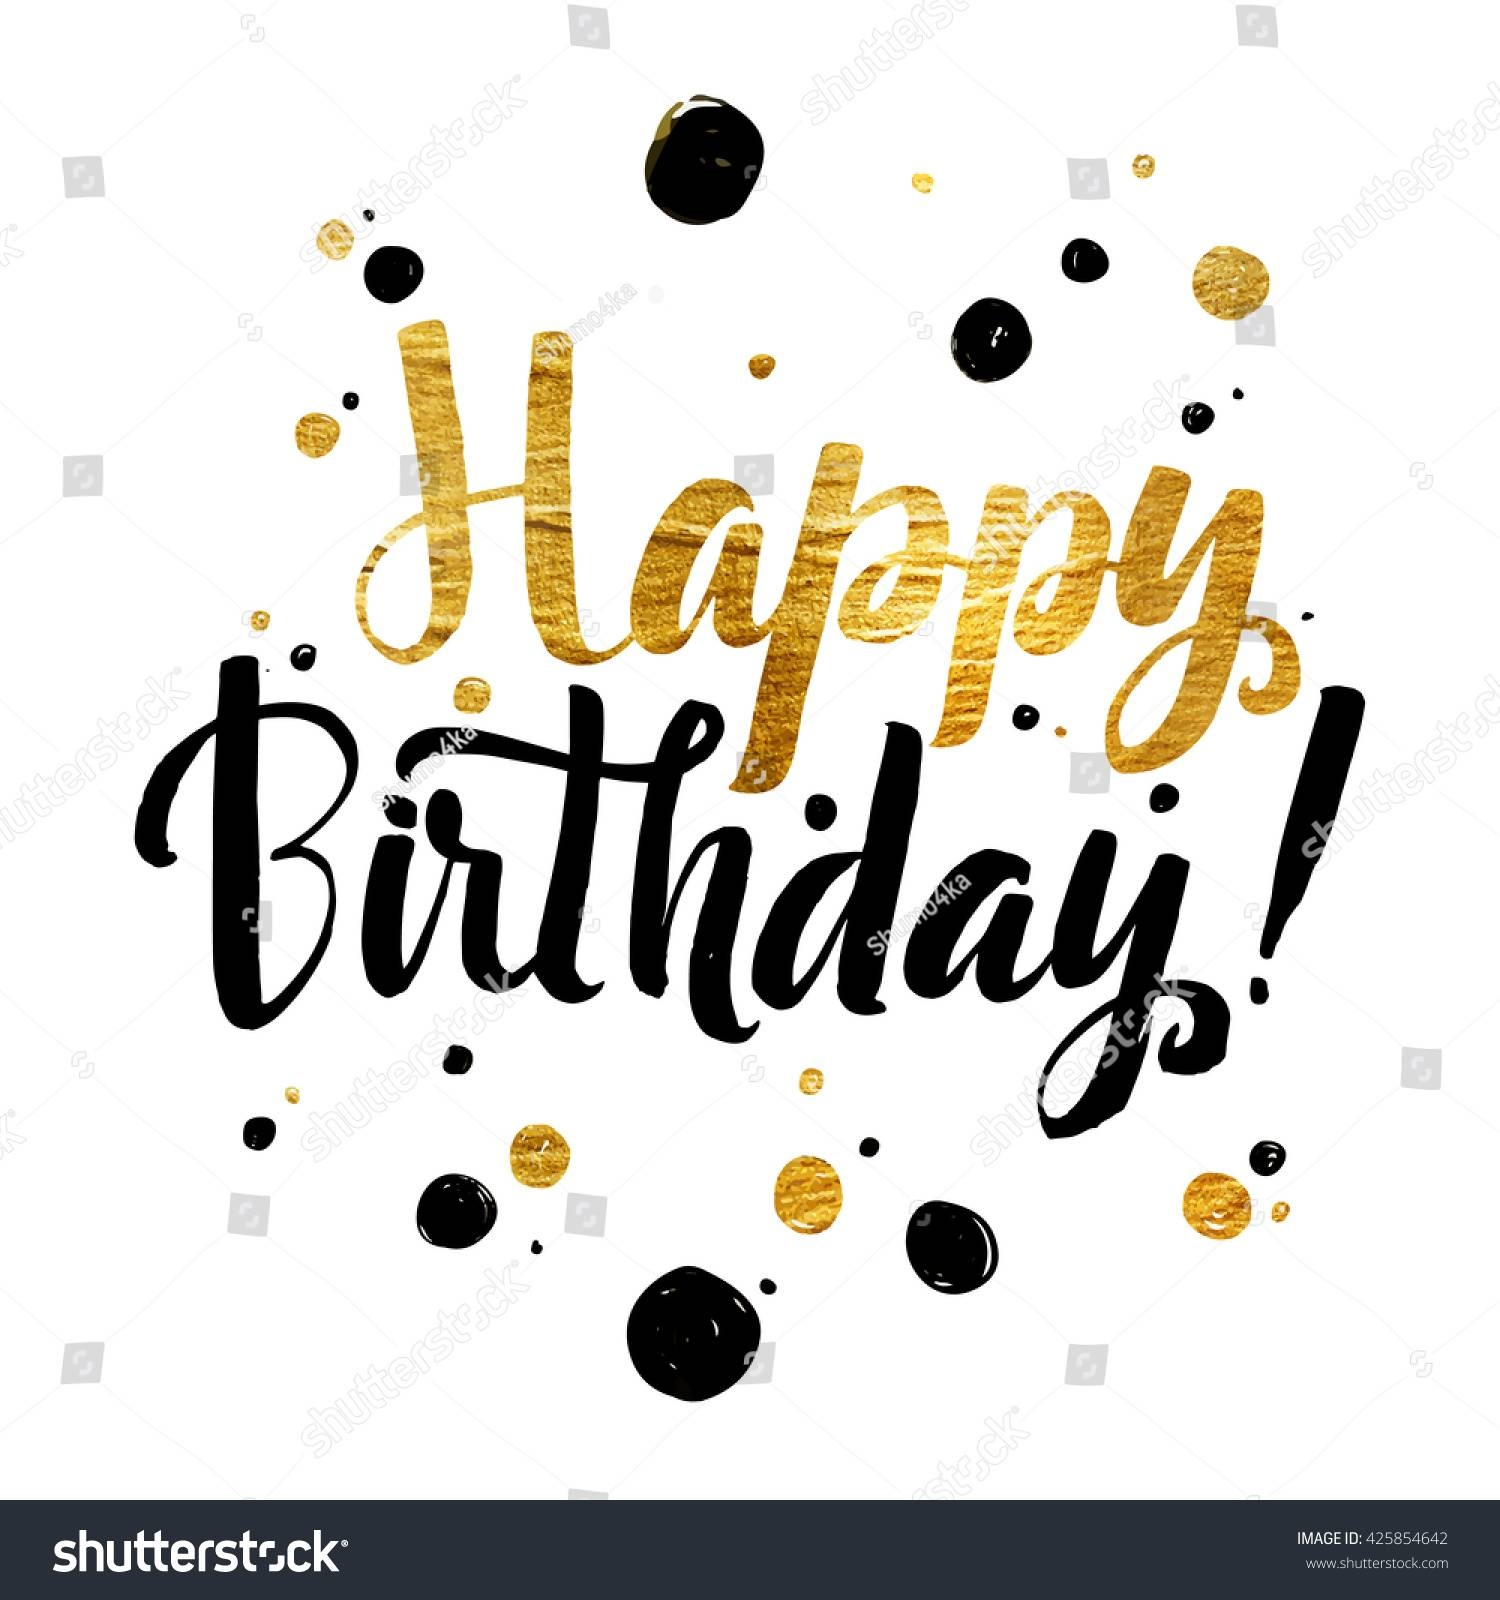 Happy Birthday Gold Foil Calligraphic Message Stock Vector With Regard To Most Recently Released Happy Birthday Wall Art (View 9 of 20)